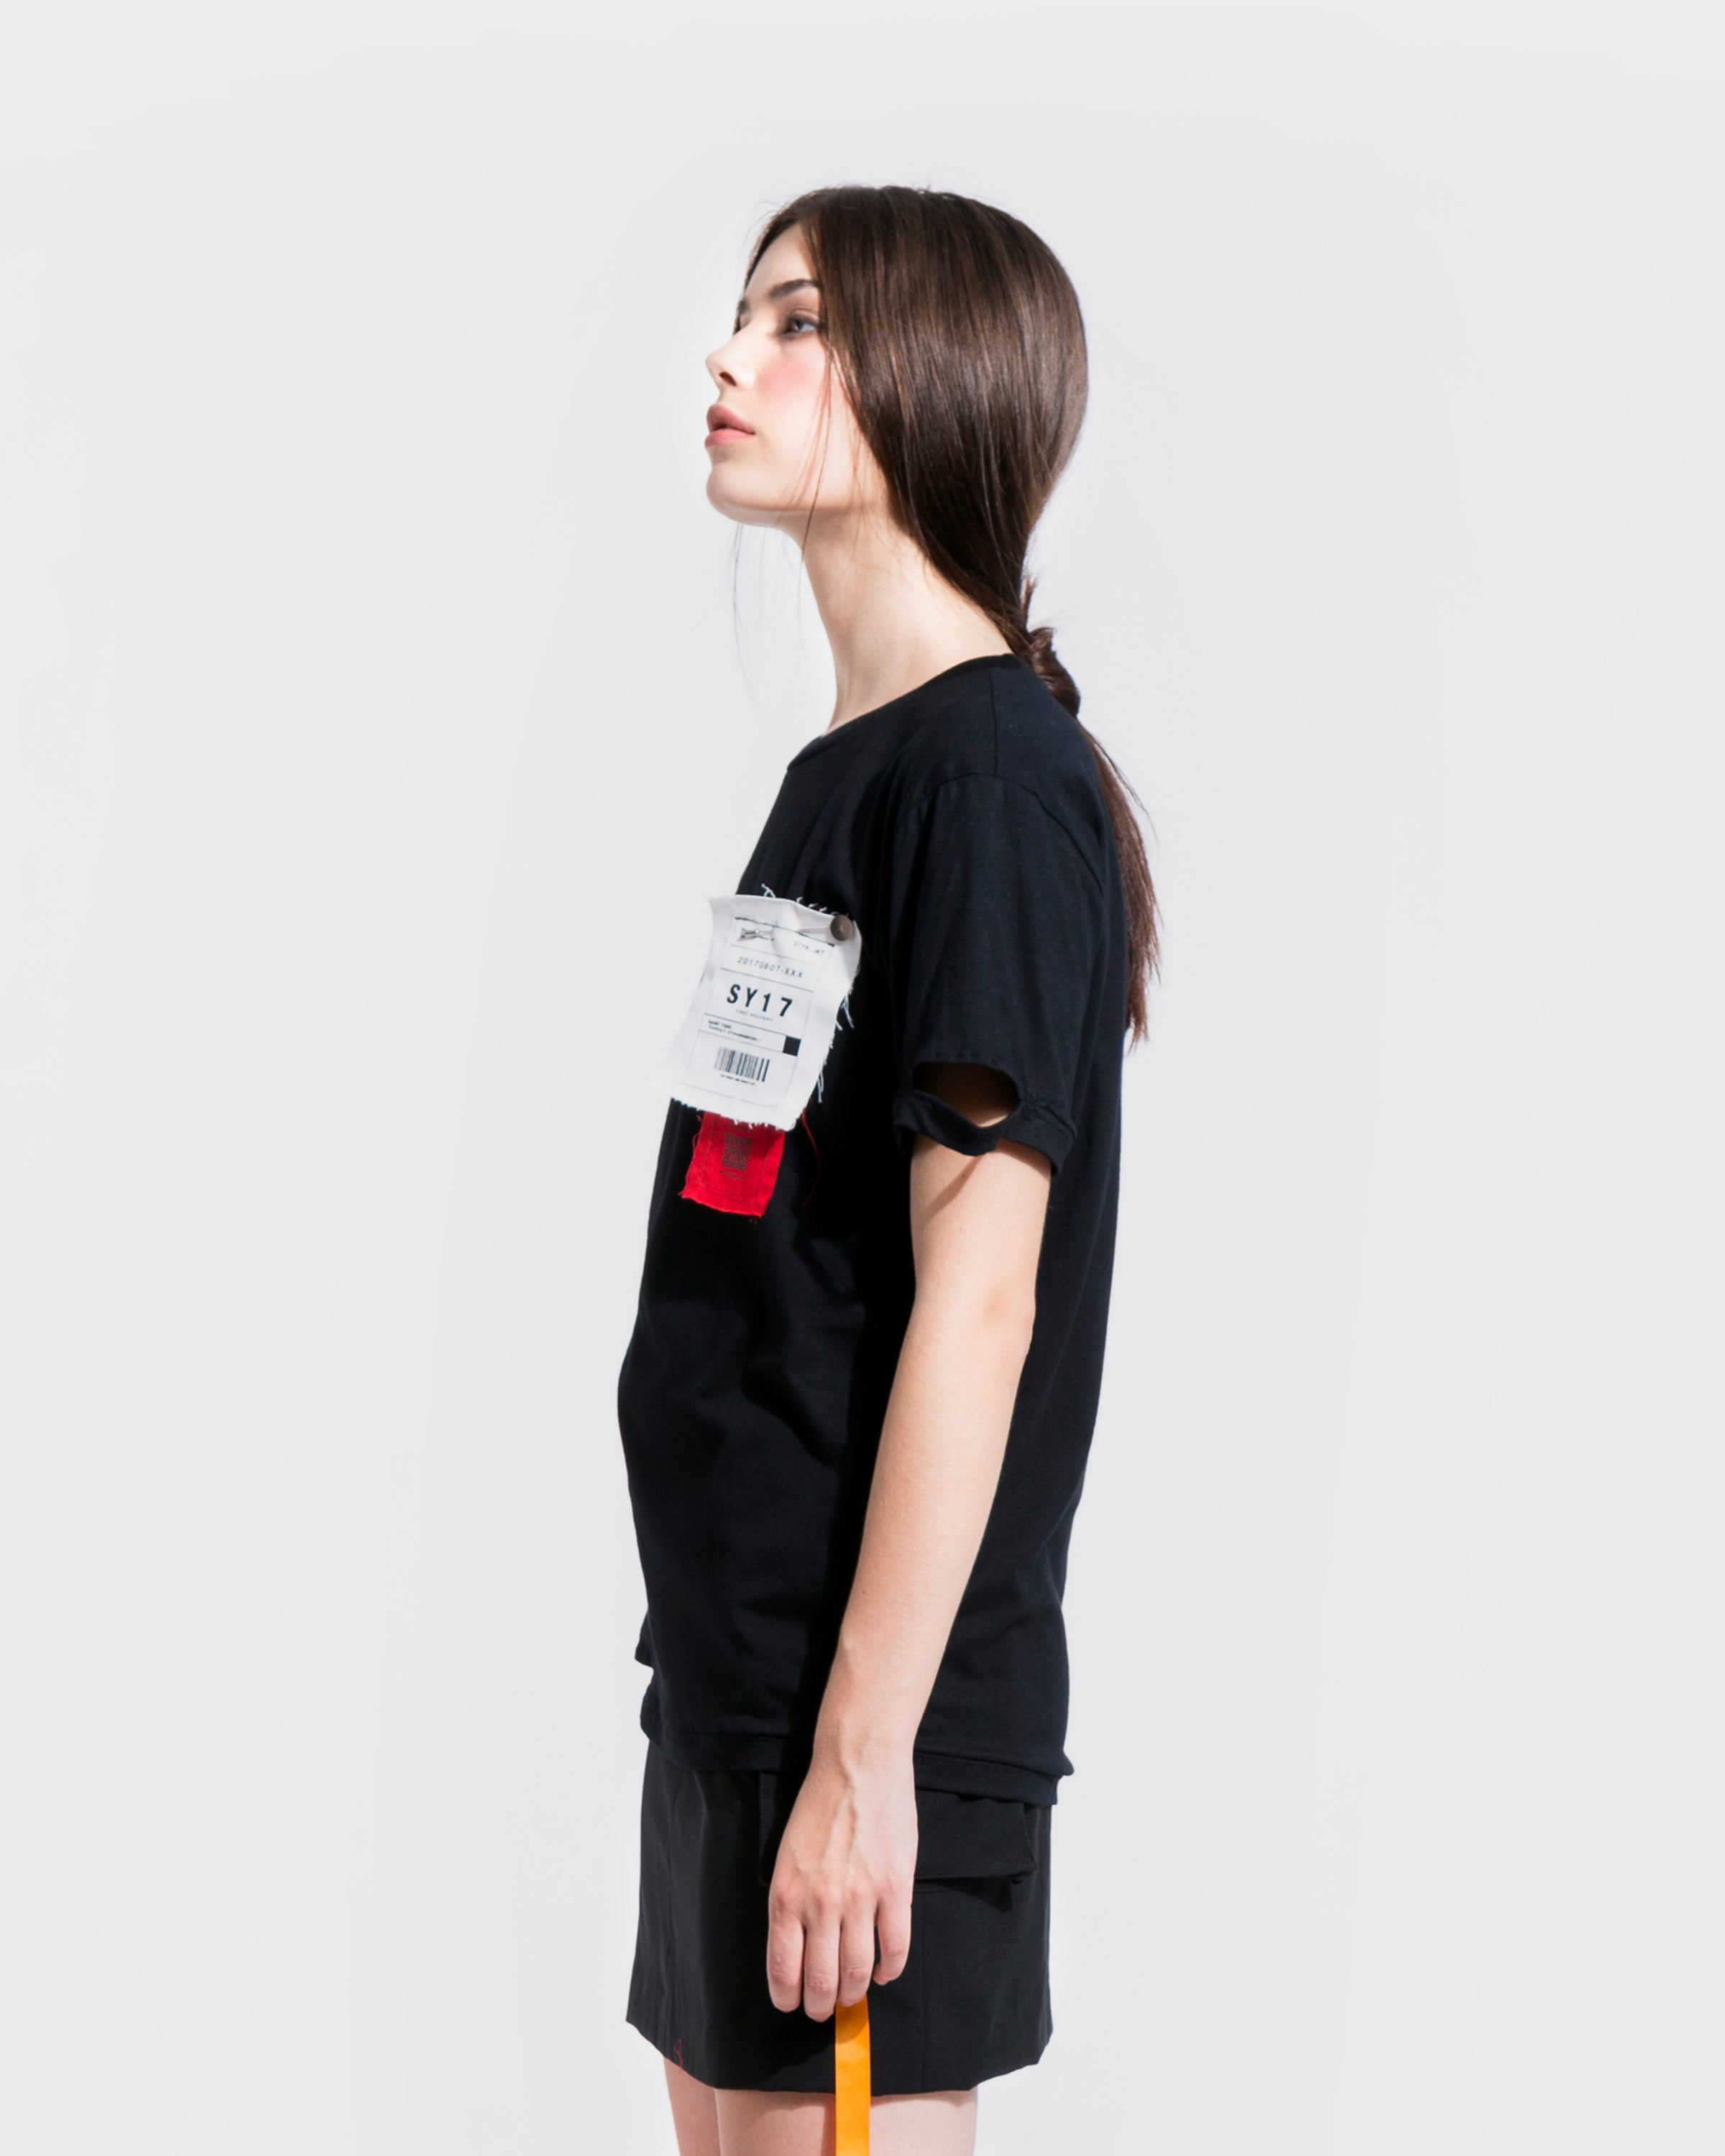 SoHo T-shirt (Black) - Saint York